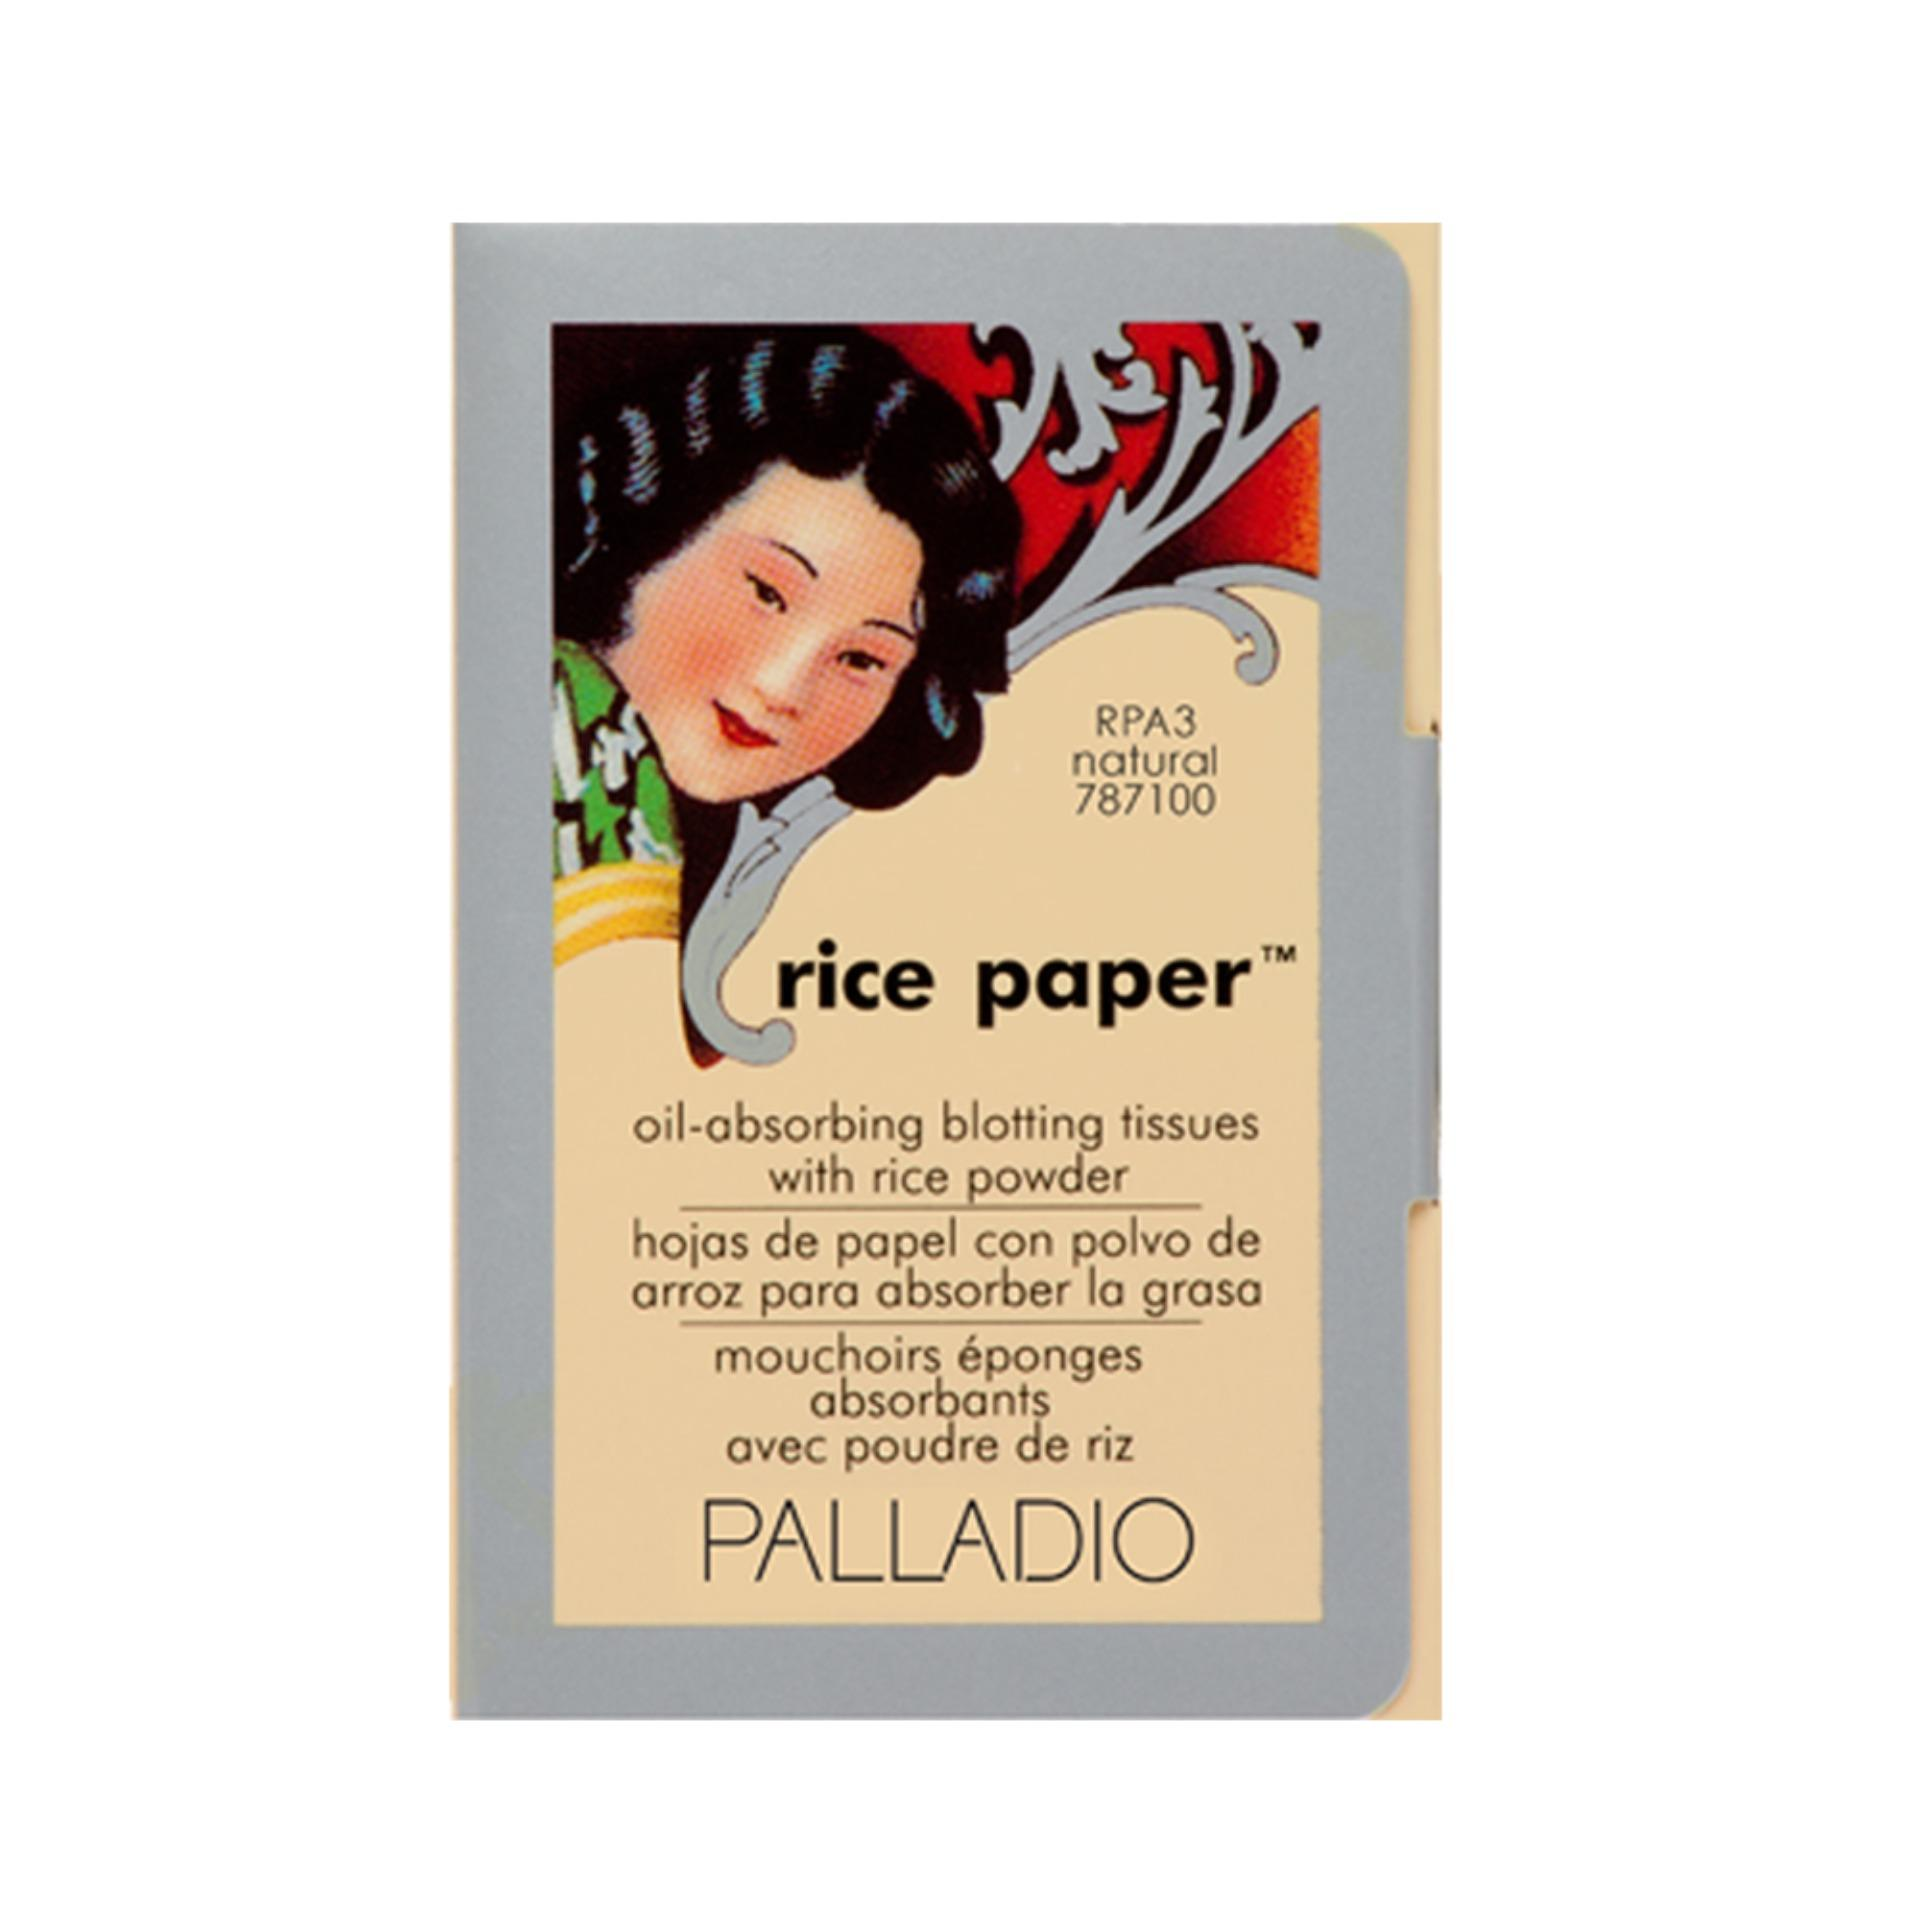 PALLADIO Natural Rice Paper Philippines